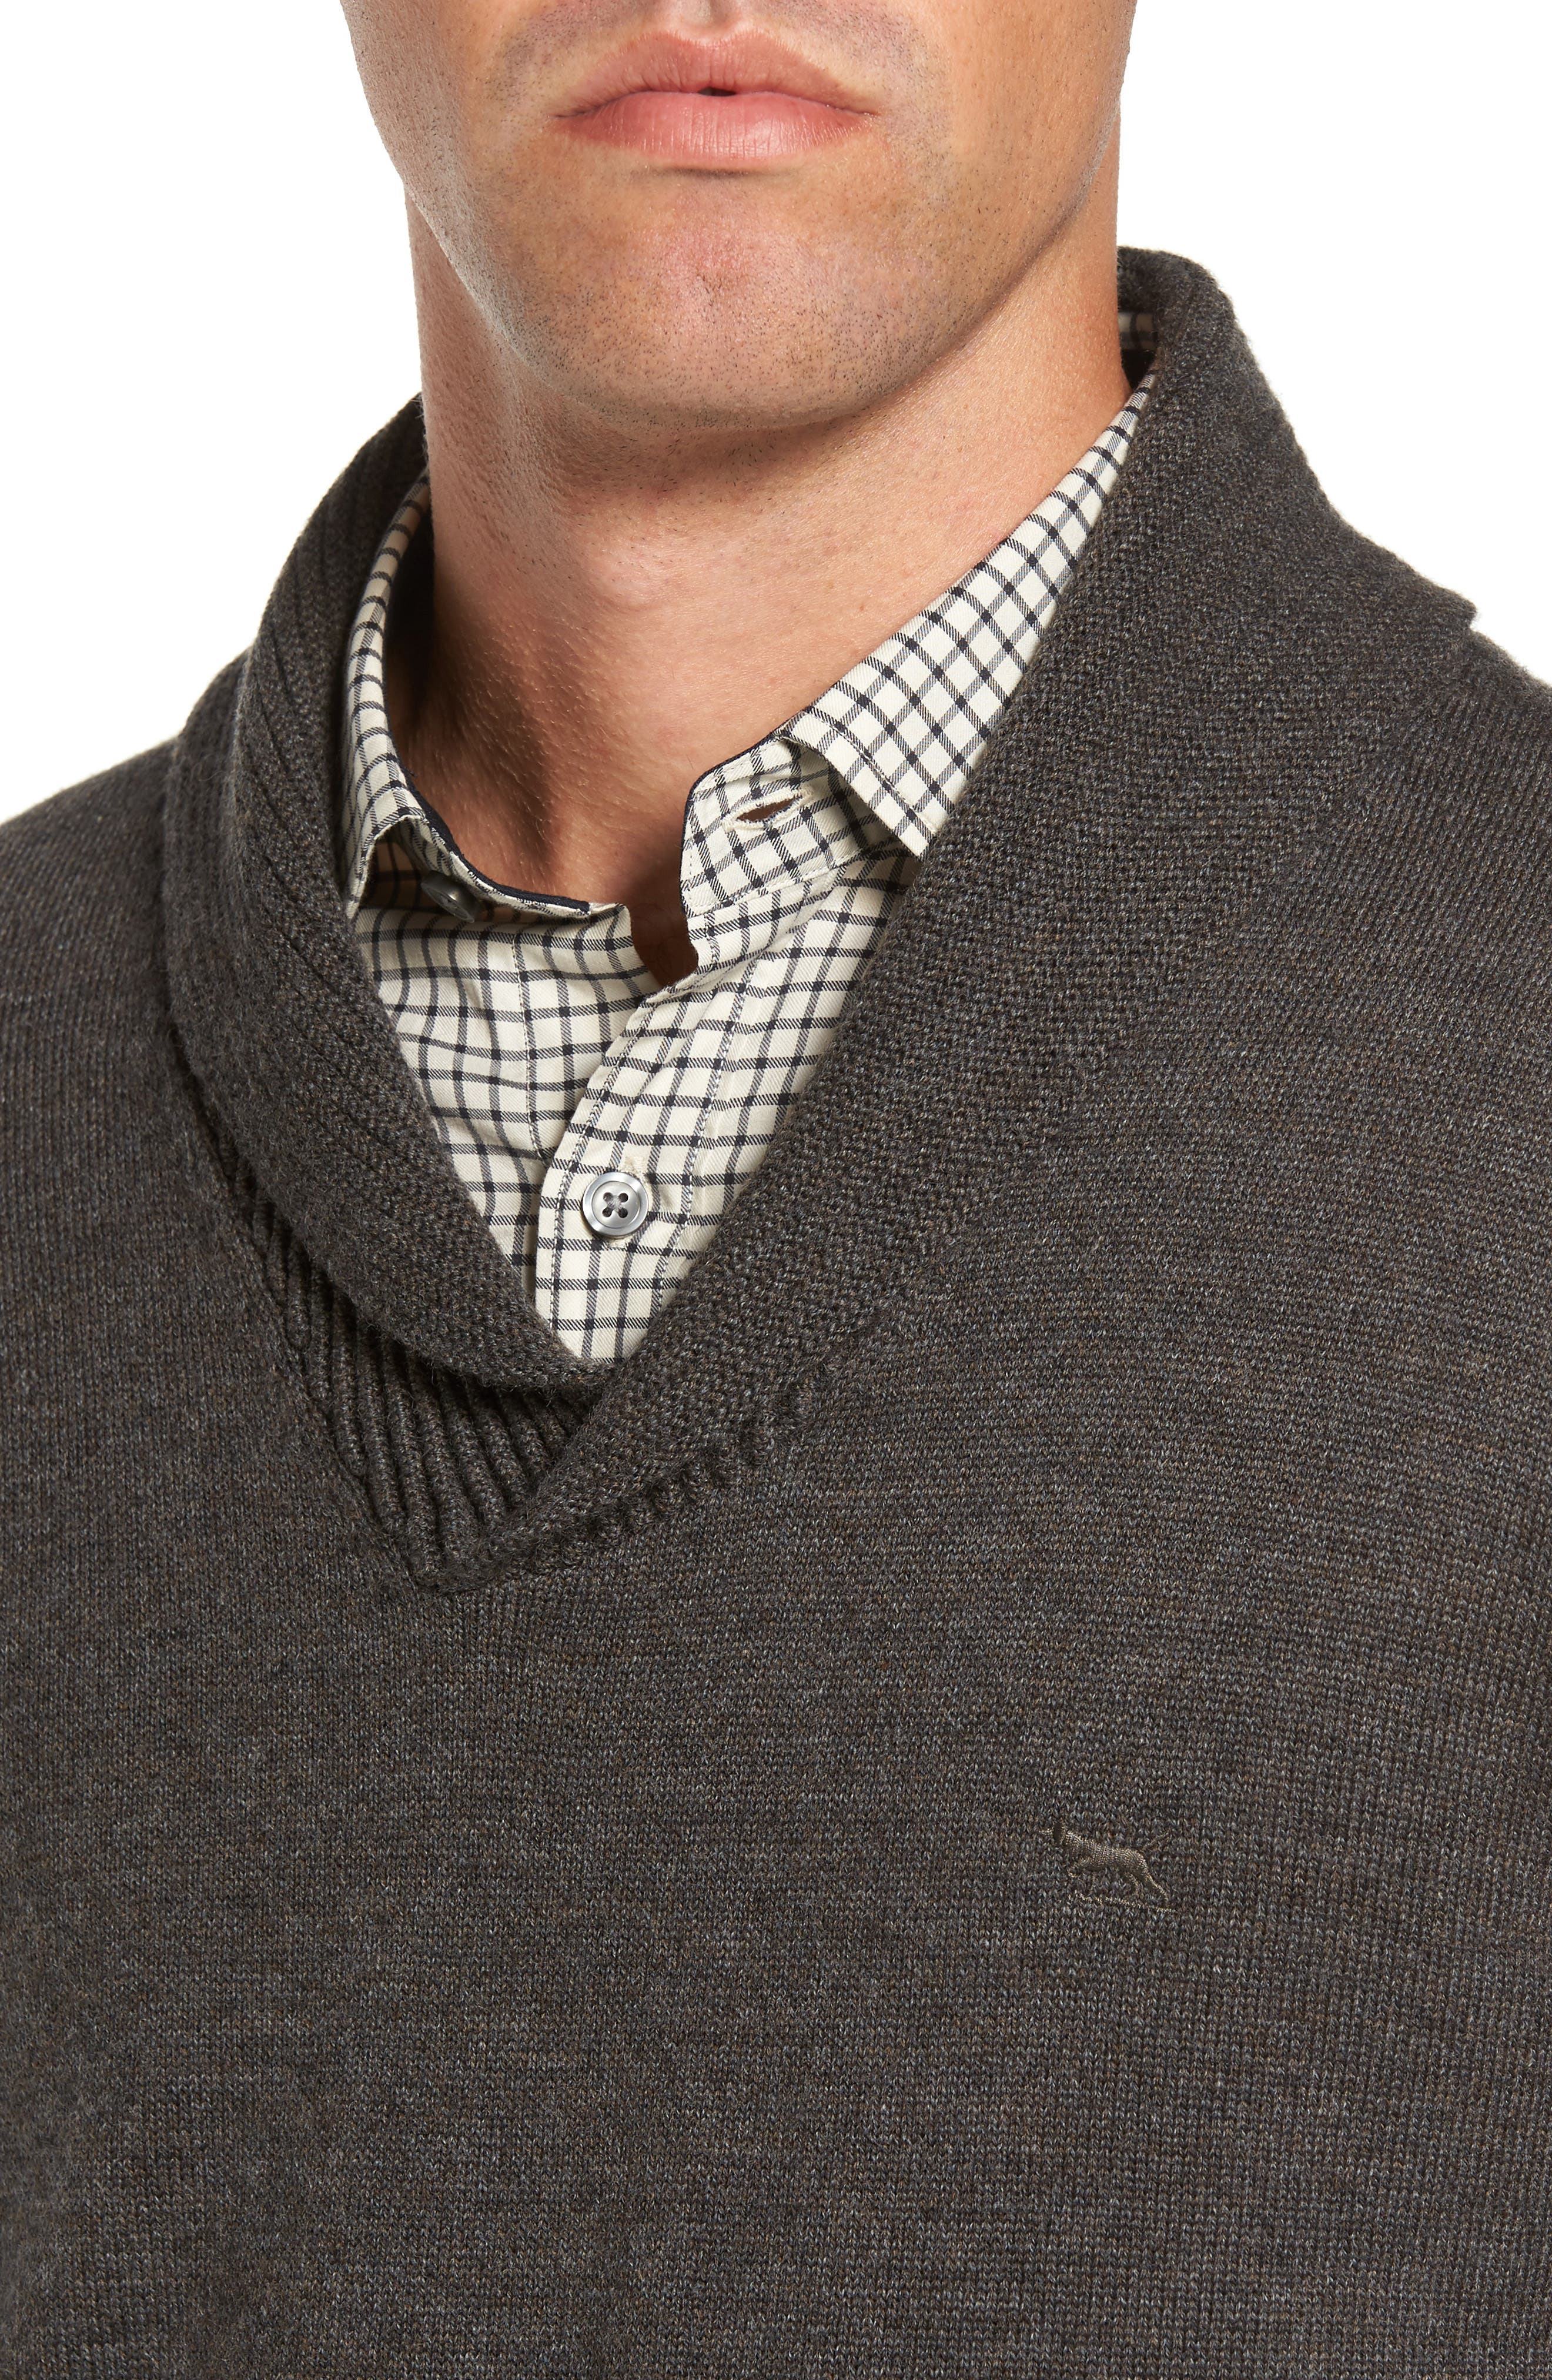 PT Chevalier Shawl Collar Sweater,                             Alternate thumbnail 4, color,                             202